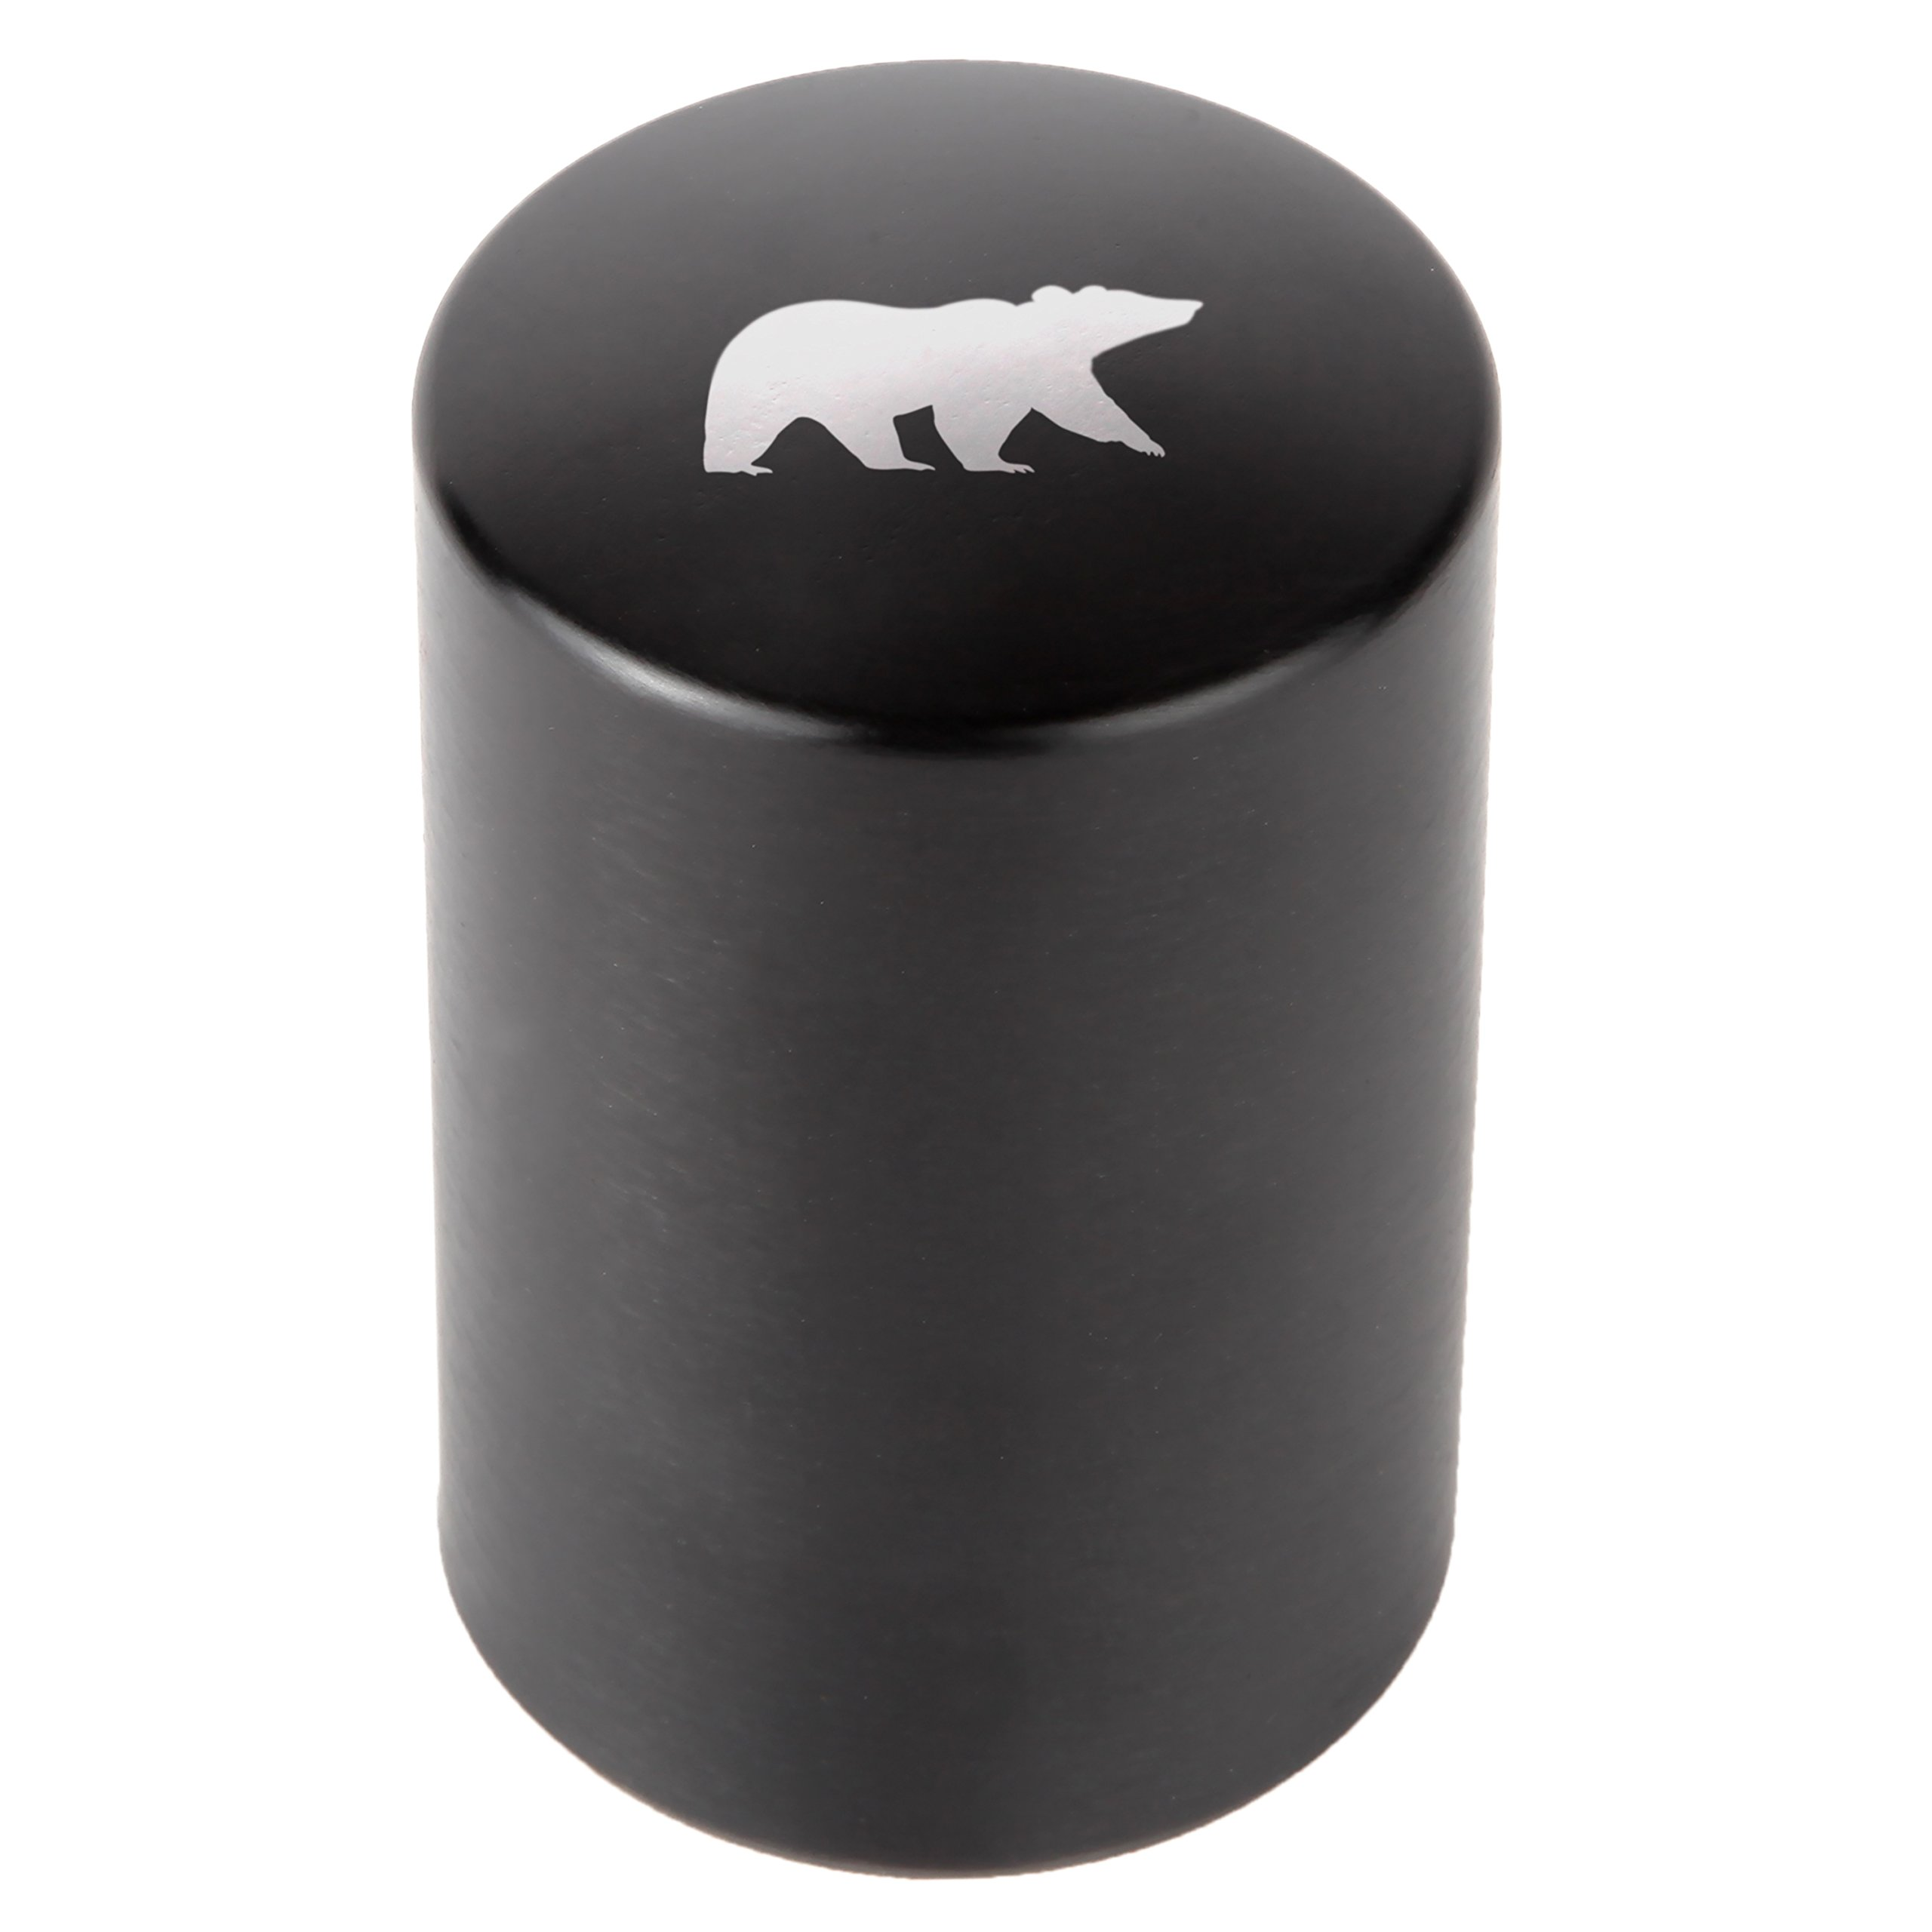 Grizzly Bear Automatic Bottle Opener - Laser Etched Design - Bottle Opener With Catcher - Fast Bottle Opener For Parties, Events Or Everyday Use